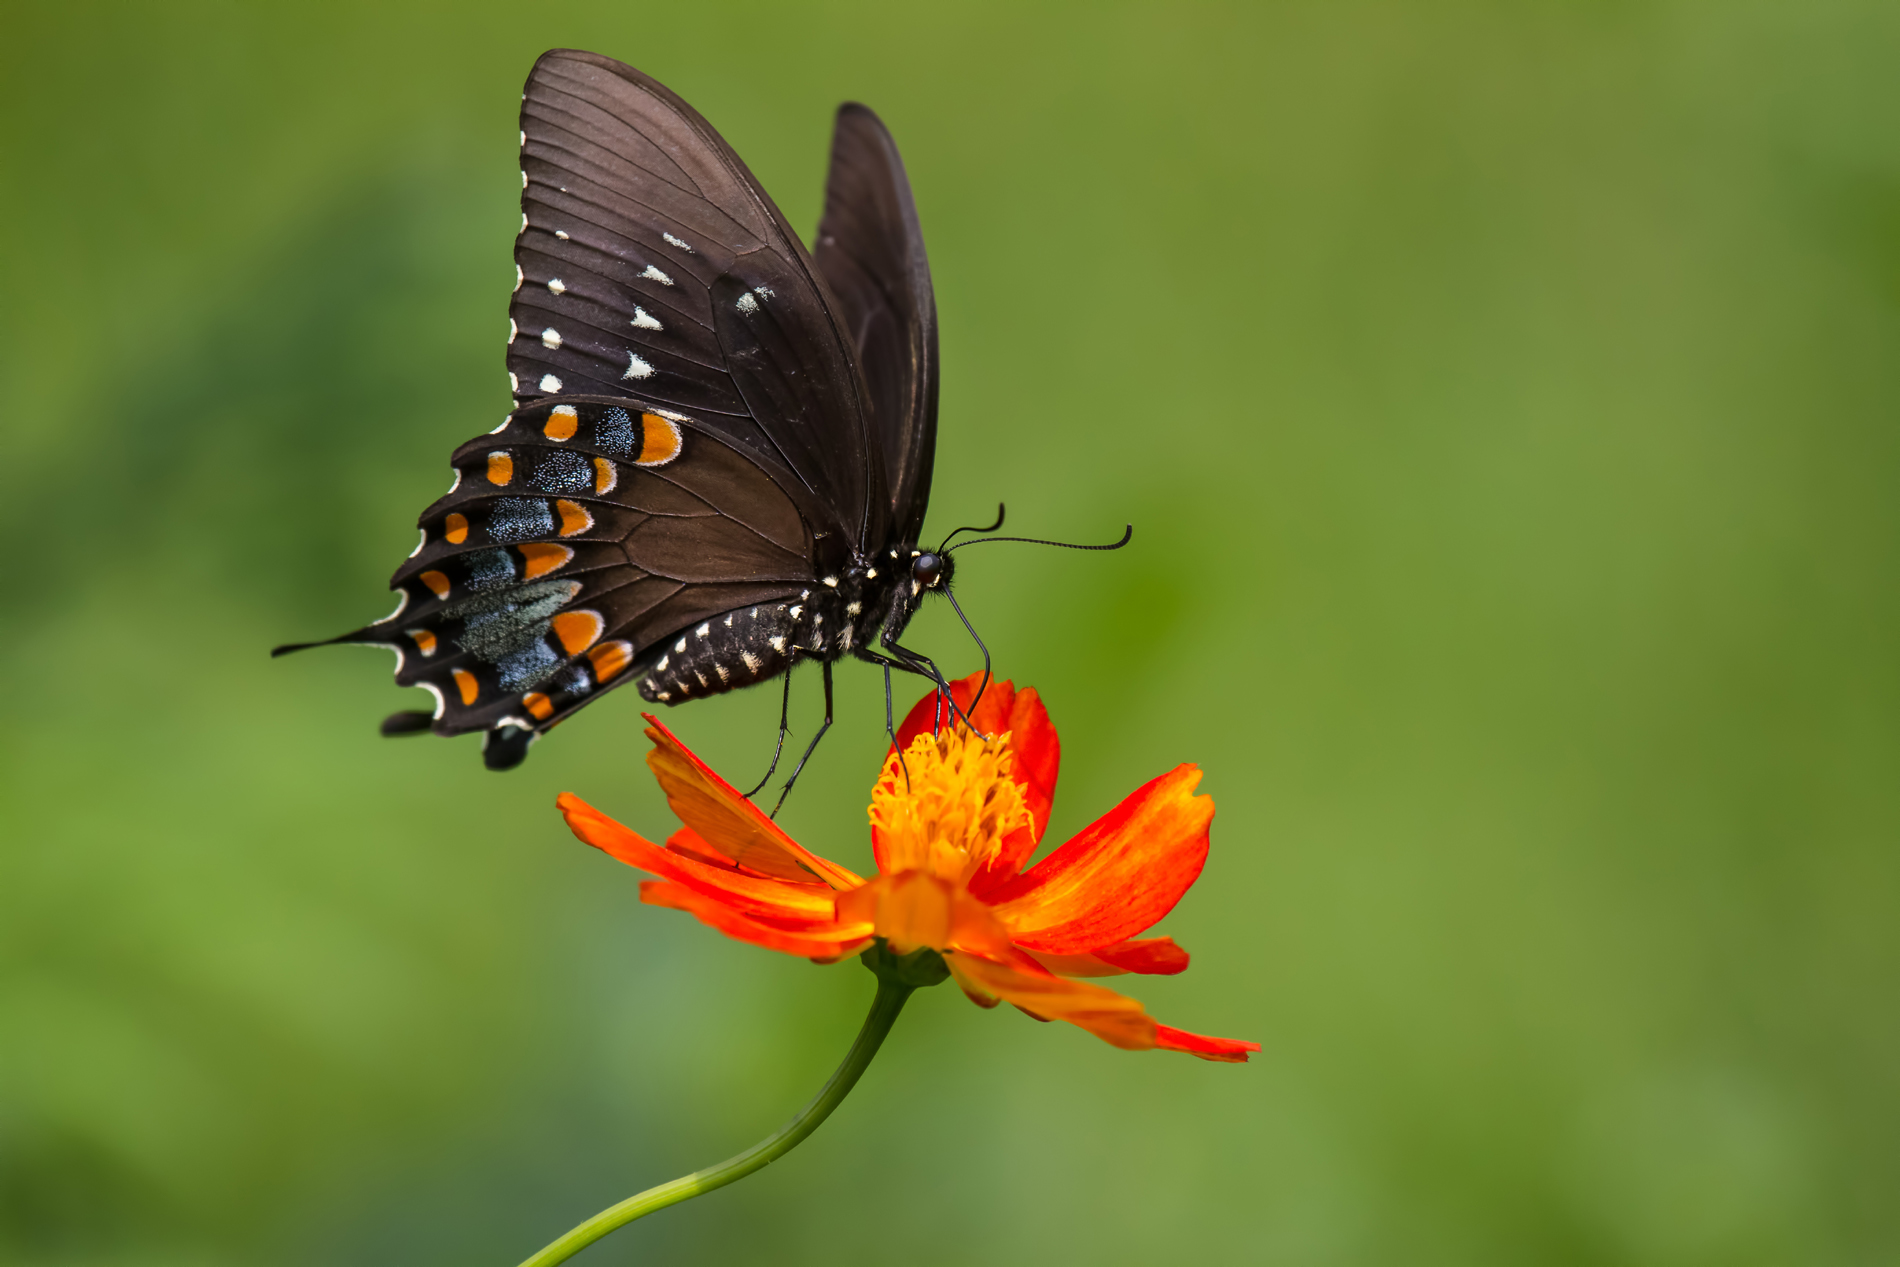 Flowers on the black Butterfly 52796